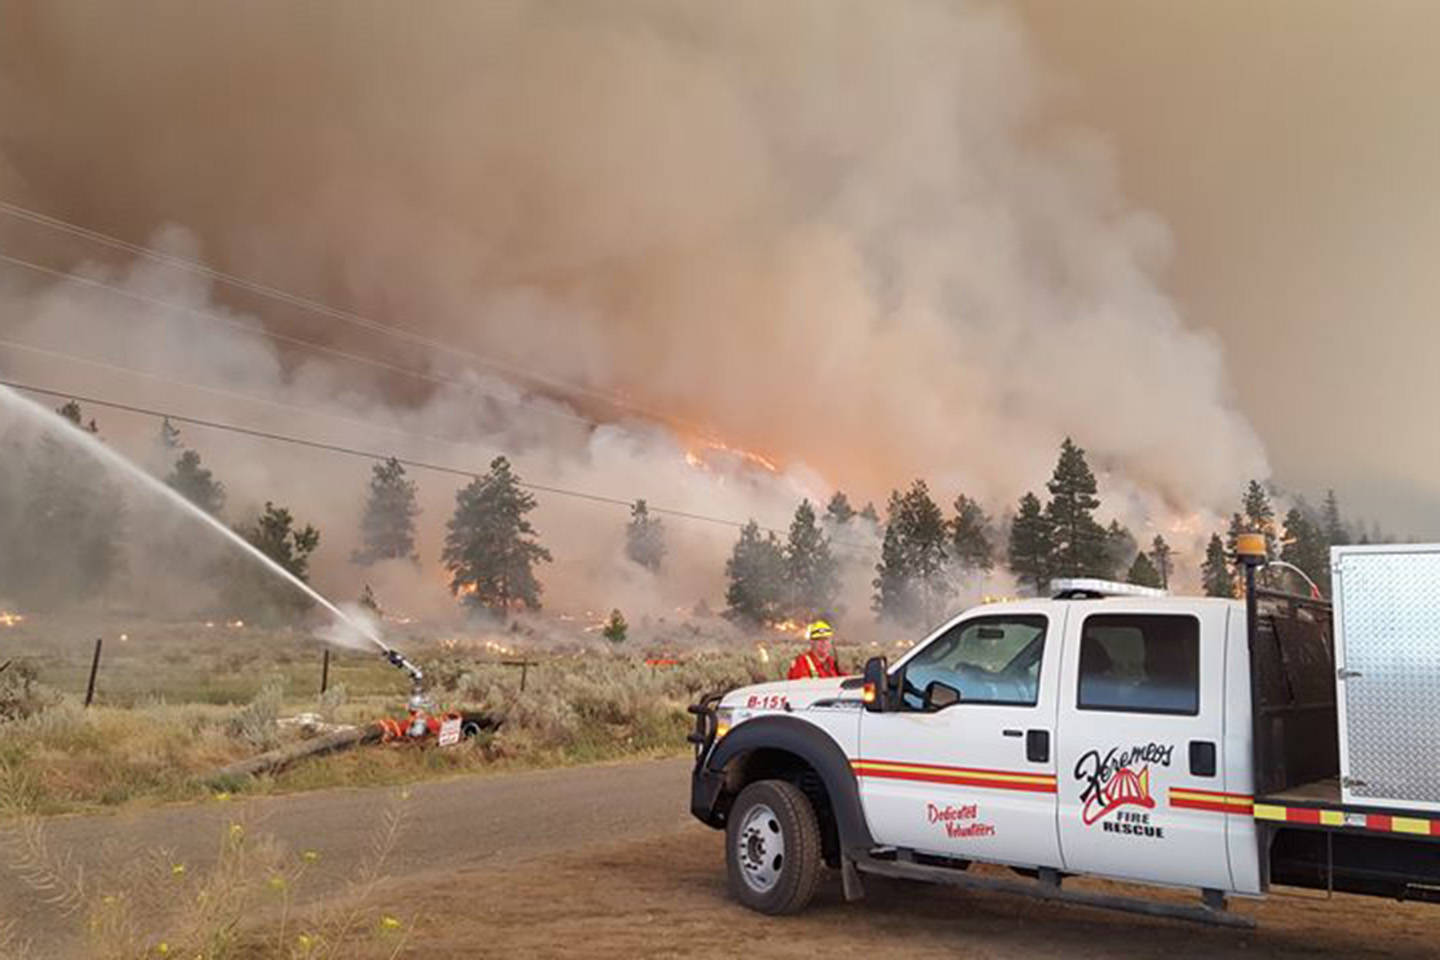 Submitted                                The Keremeos Volunteer Fire Department has worked alongside the BC Wildfire crews doing water suppression to save buildings, putting out spot fires, and patrolling.